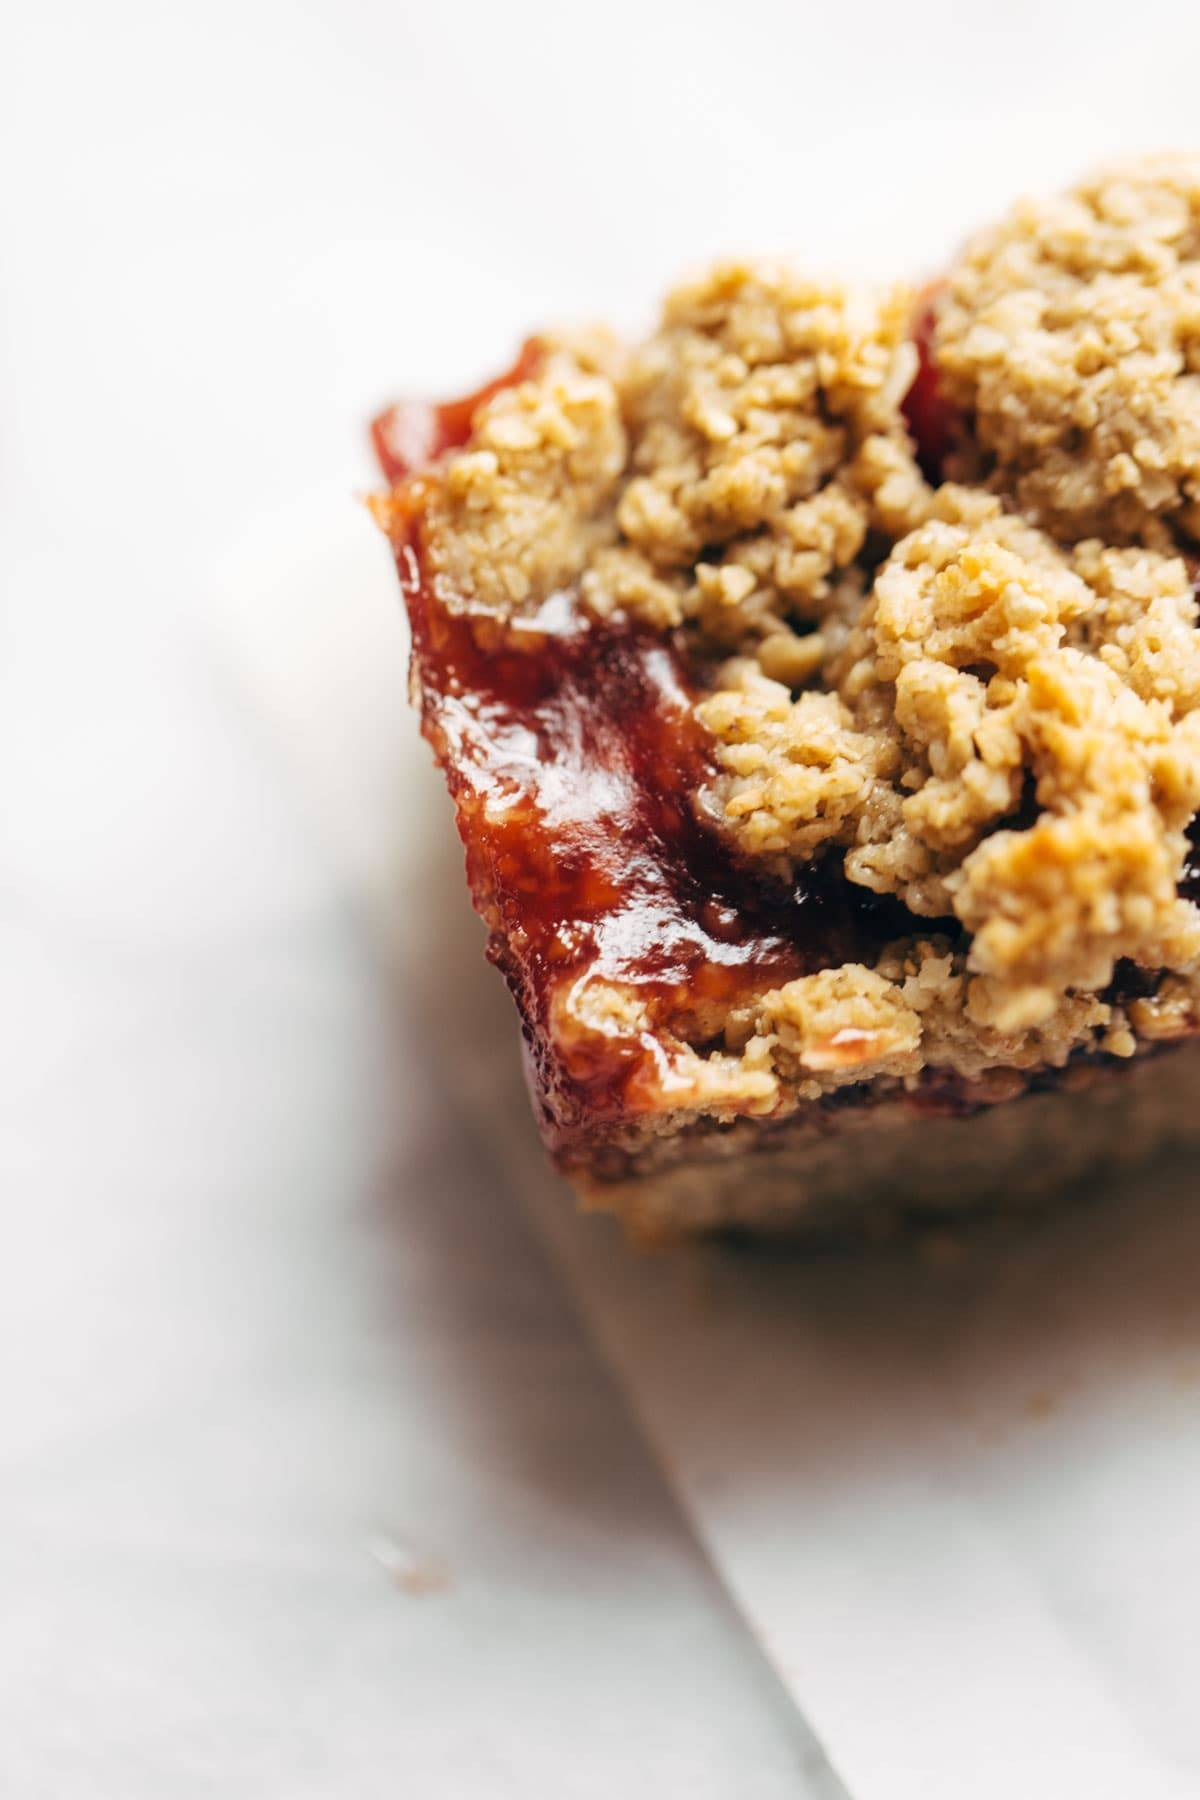 Strawberry Oat Crumble Bars - simple vegan dessert / snack bars! made with oats, sunflower seeds, coconut oil, maple syrup, and jam. | pinchofyum.com